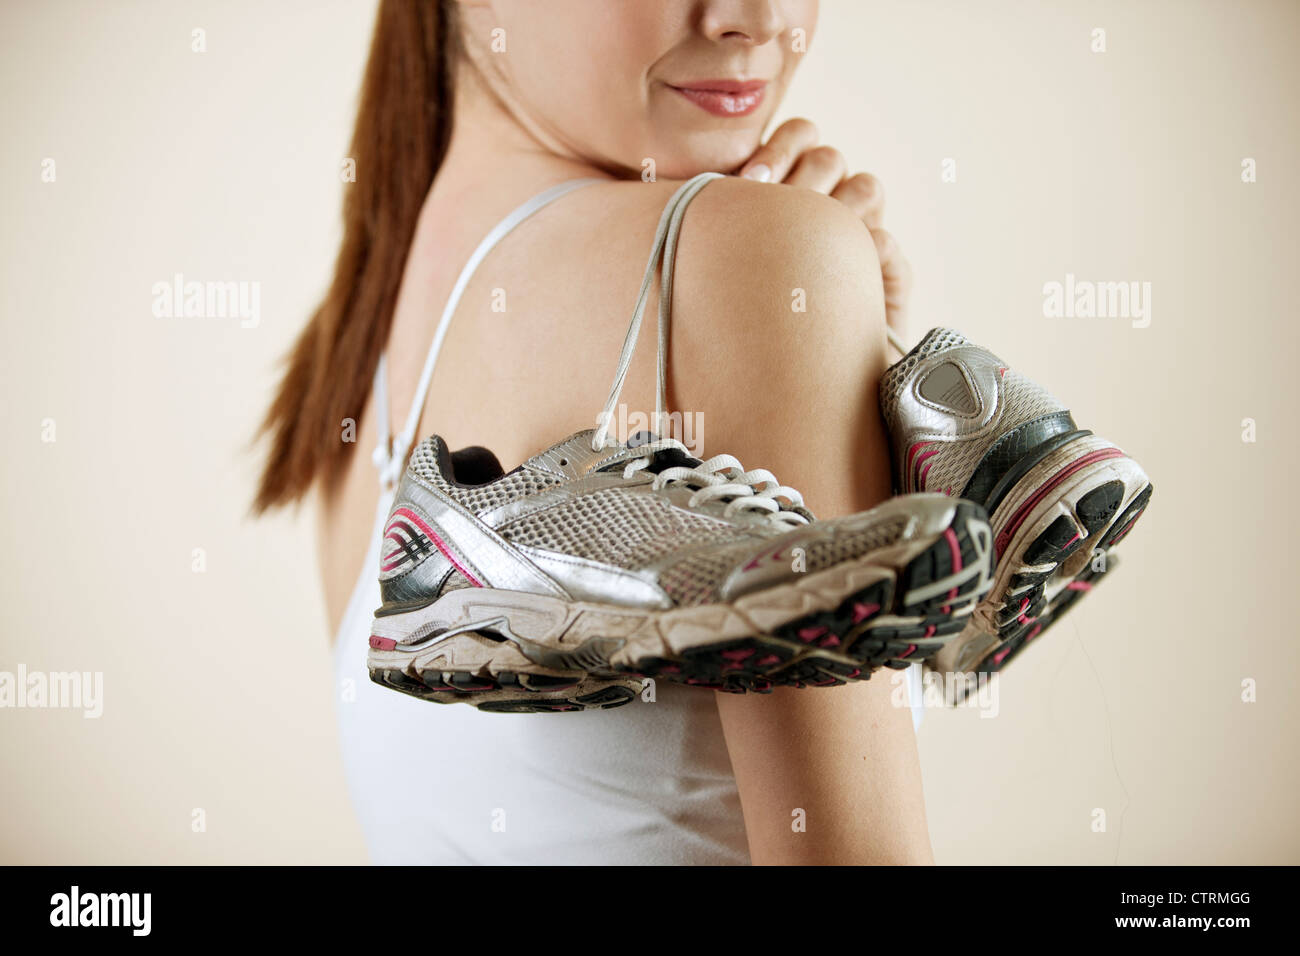 A young woman holding a pair of training shoes over her shoulder, close-up Stock Photo